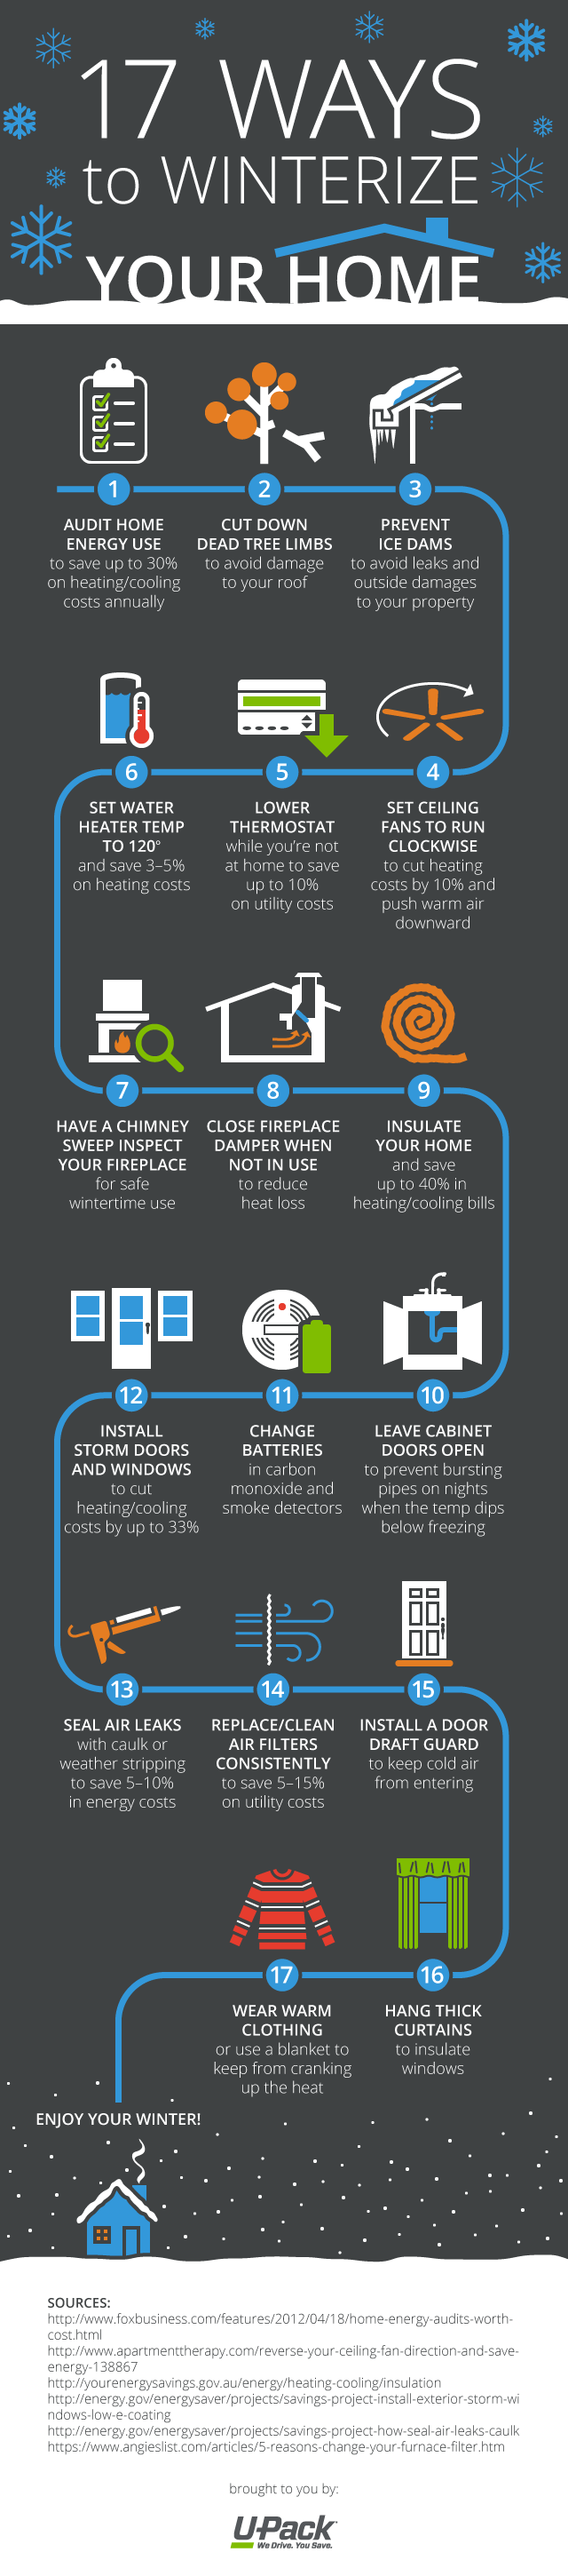 17-ways-to-winterize-your-home-infographic_640x2900.png